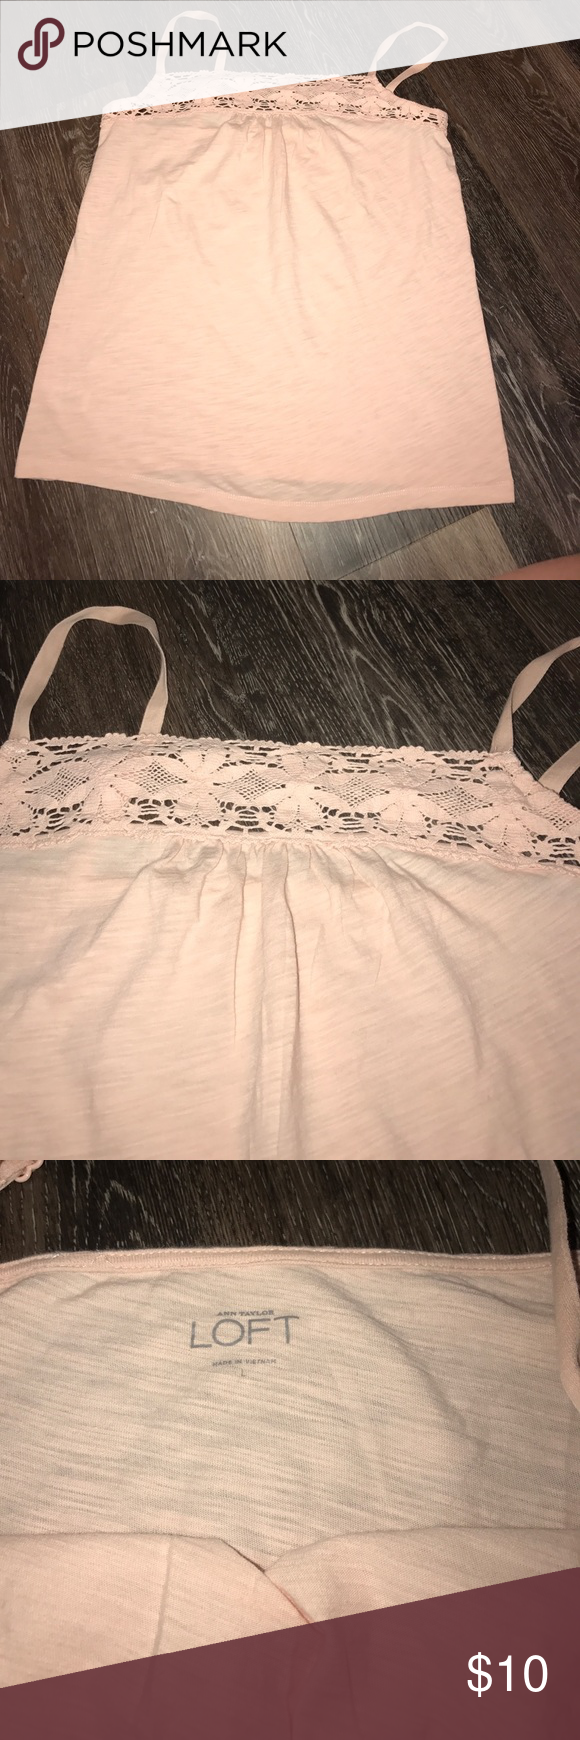 """Loft Large Lace Trim Topped Camisole Peach EUC Loft Large Lace Trim Topped Camisole Peach/Blush Color.  EUC!  Beautiful Tank / Cami. Can wear all year round! Adjustable straps. Measures approximately 17"""" across chest and 20"""" from neckline to bottom. Gorgeous lace top! LOFT Tops Camisoles"""